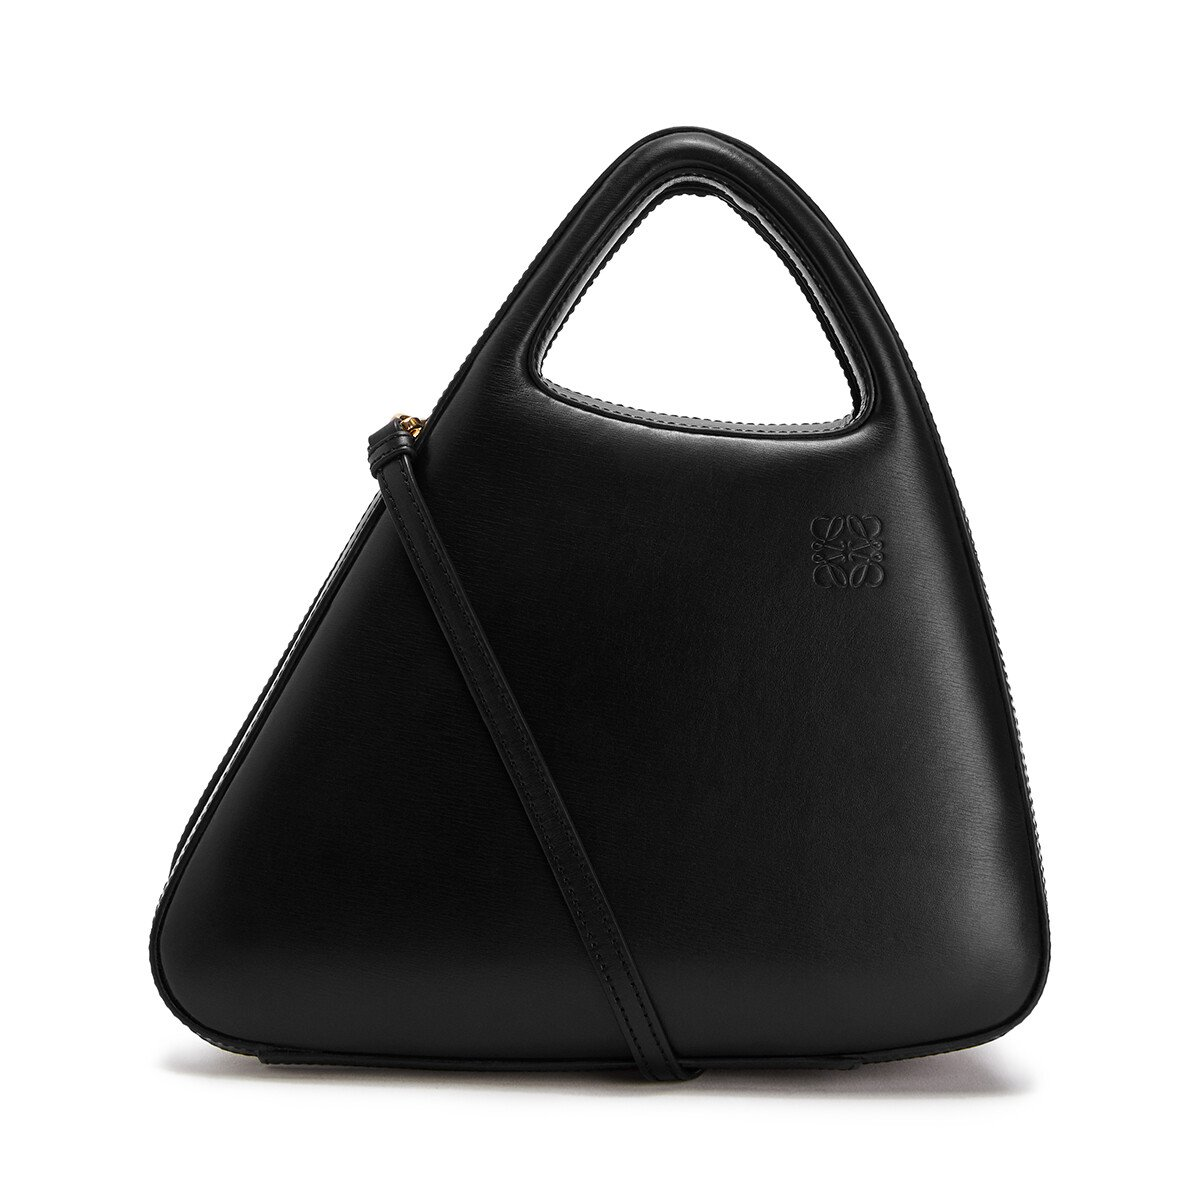 LOEWE Architects A Bag 黑色 front